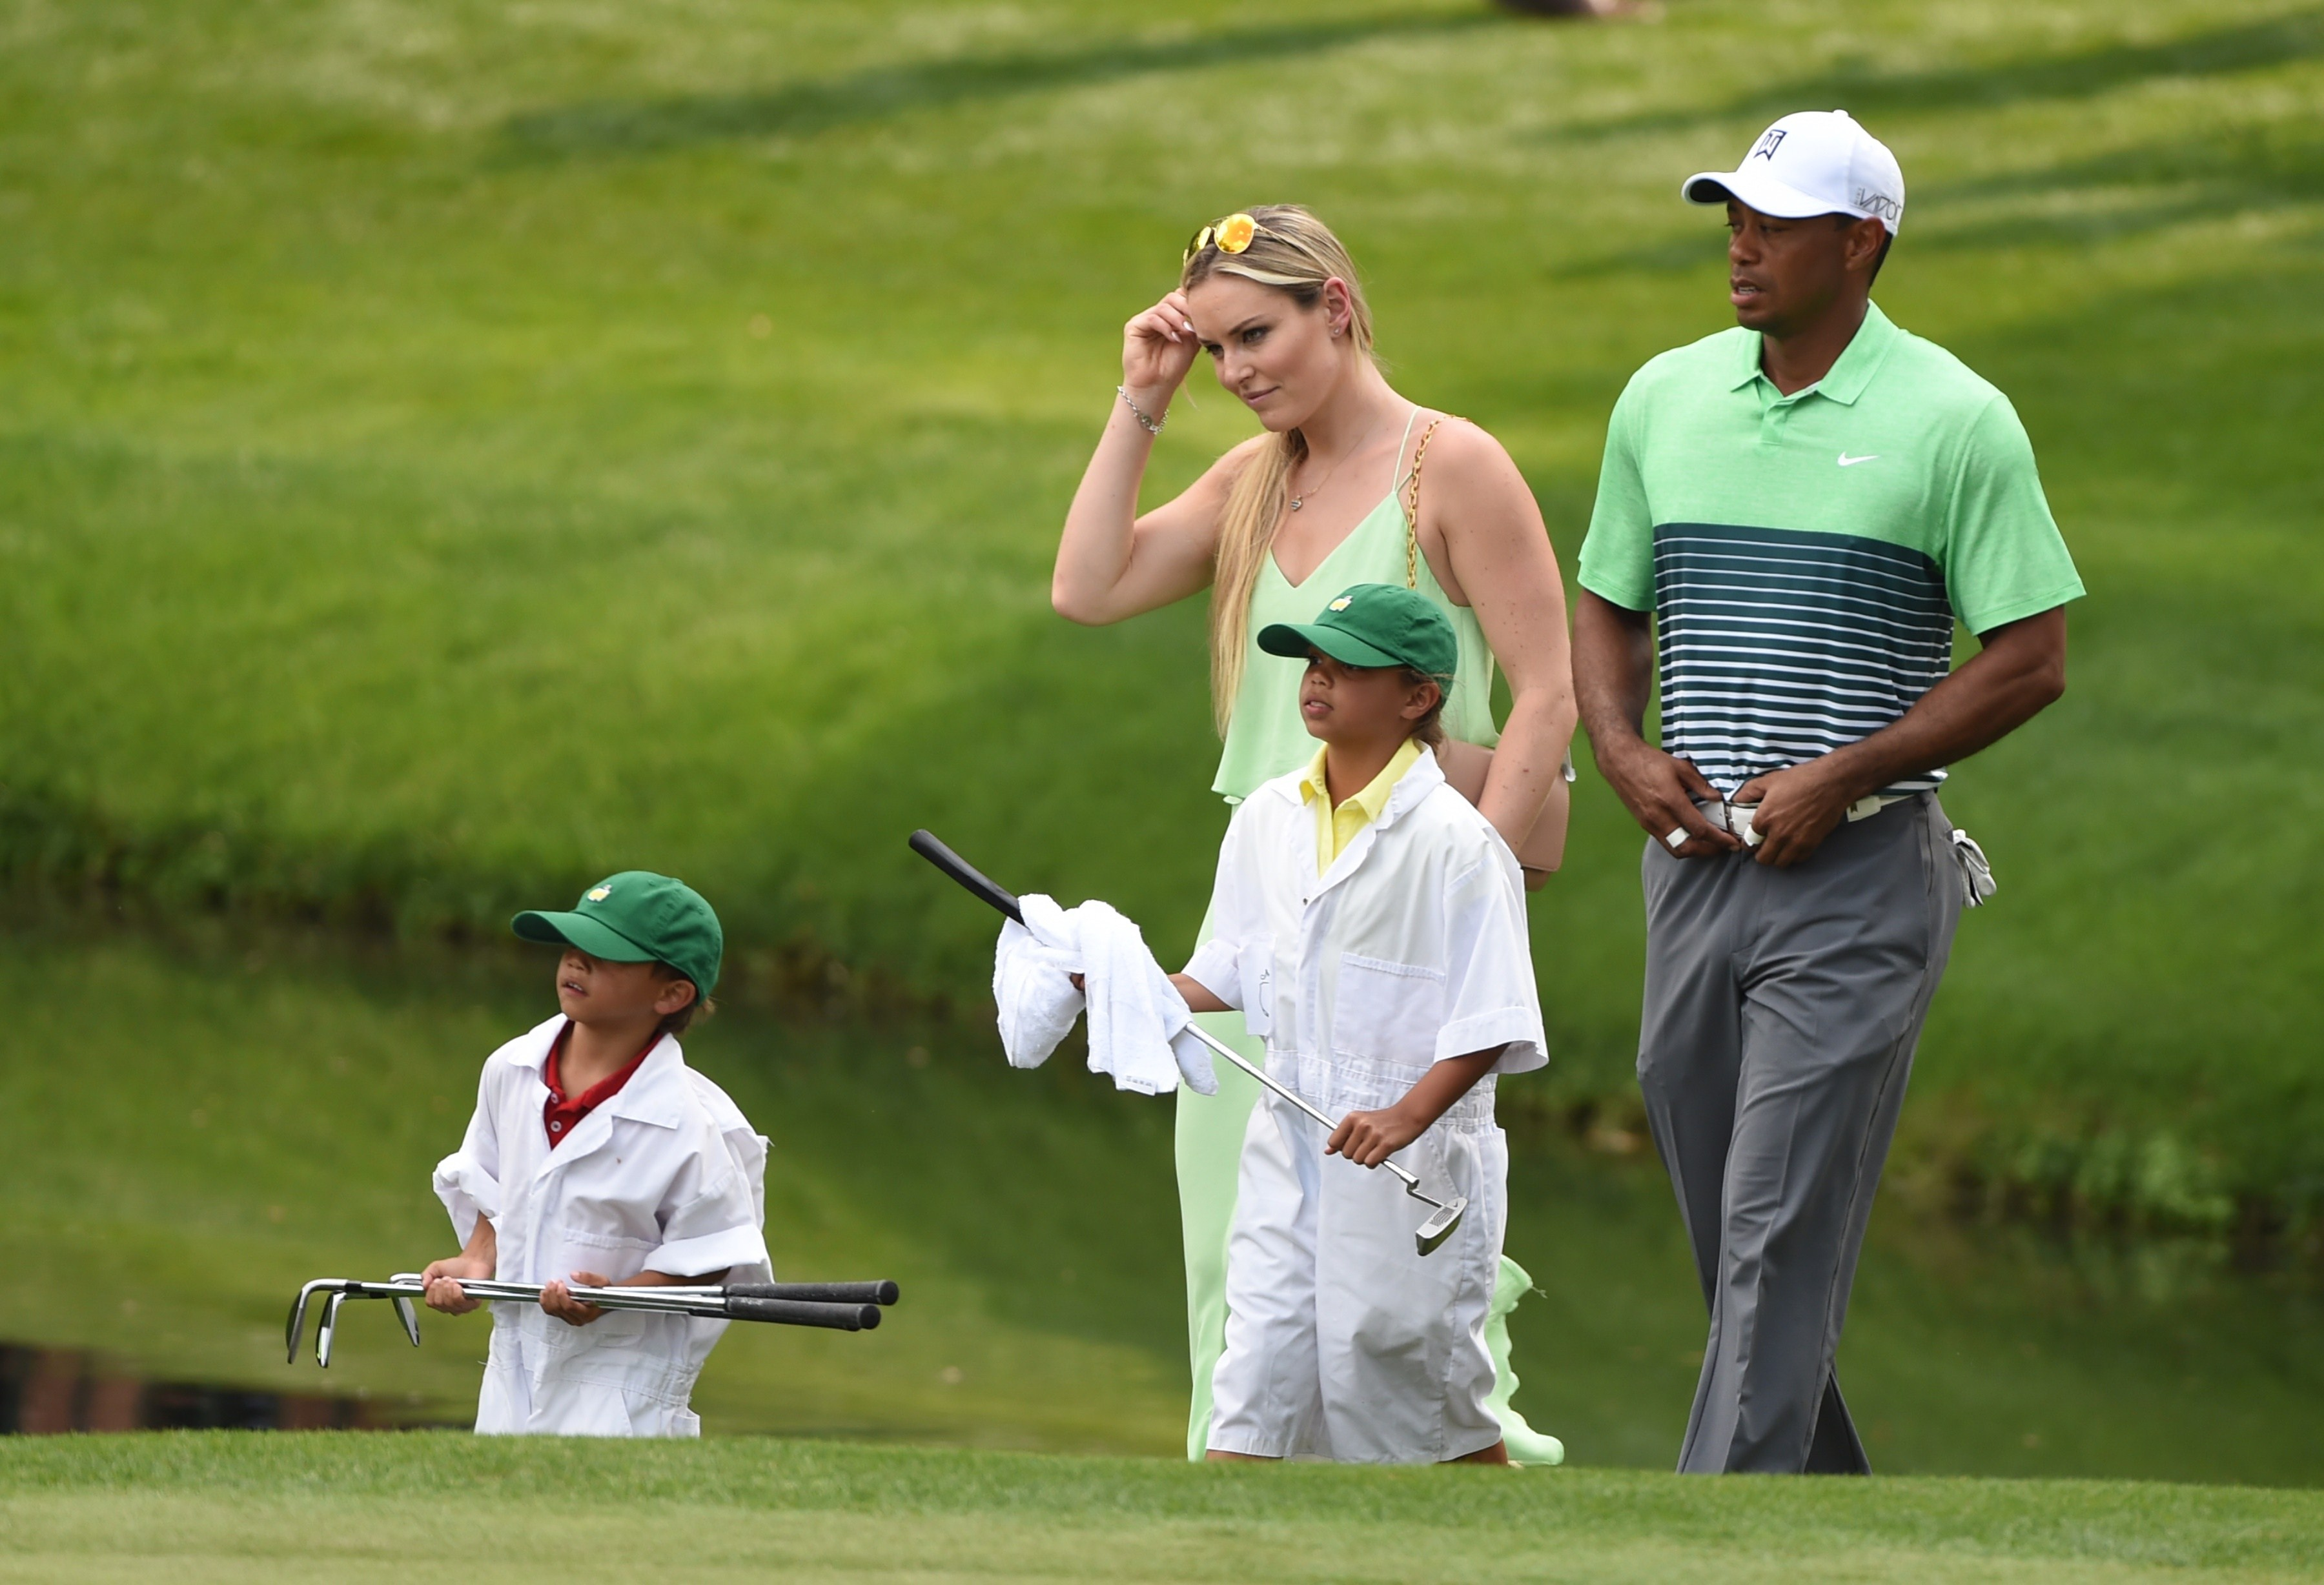 Tiger Woods of the US (R) walks with US Skier Lindsey Vonn, daughter Sam Alexis and son Charlie Axel during the Par 3 competition on April 8, 2015, at Augusta National Golf Club in Augusta, Georgia. The competition is part of the Masters Golf Championship which starts April 9. AFP PHOTO/TIMOTHY A. CLARY        (Photo credit should read TIMOTHY A. CLARY/AFP/Getty Images)